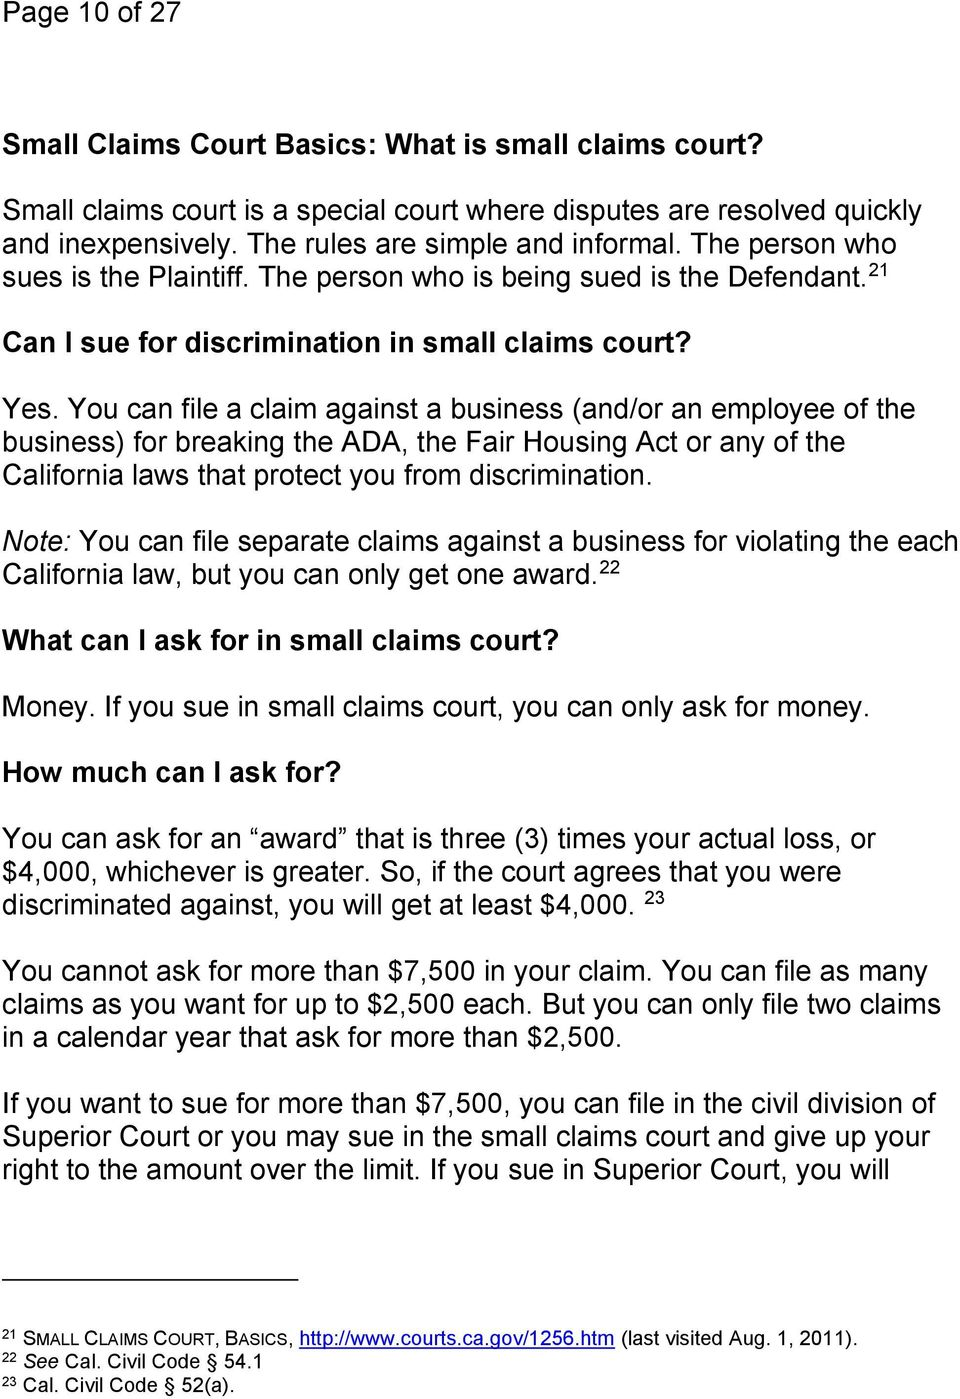 A Guide to Small Claims Court: How to Sue if a Business or